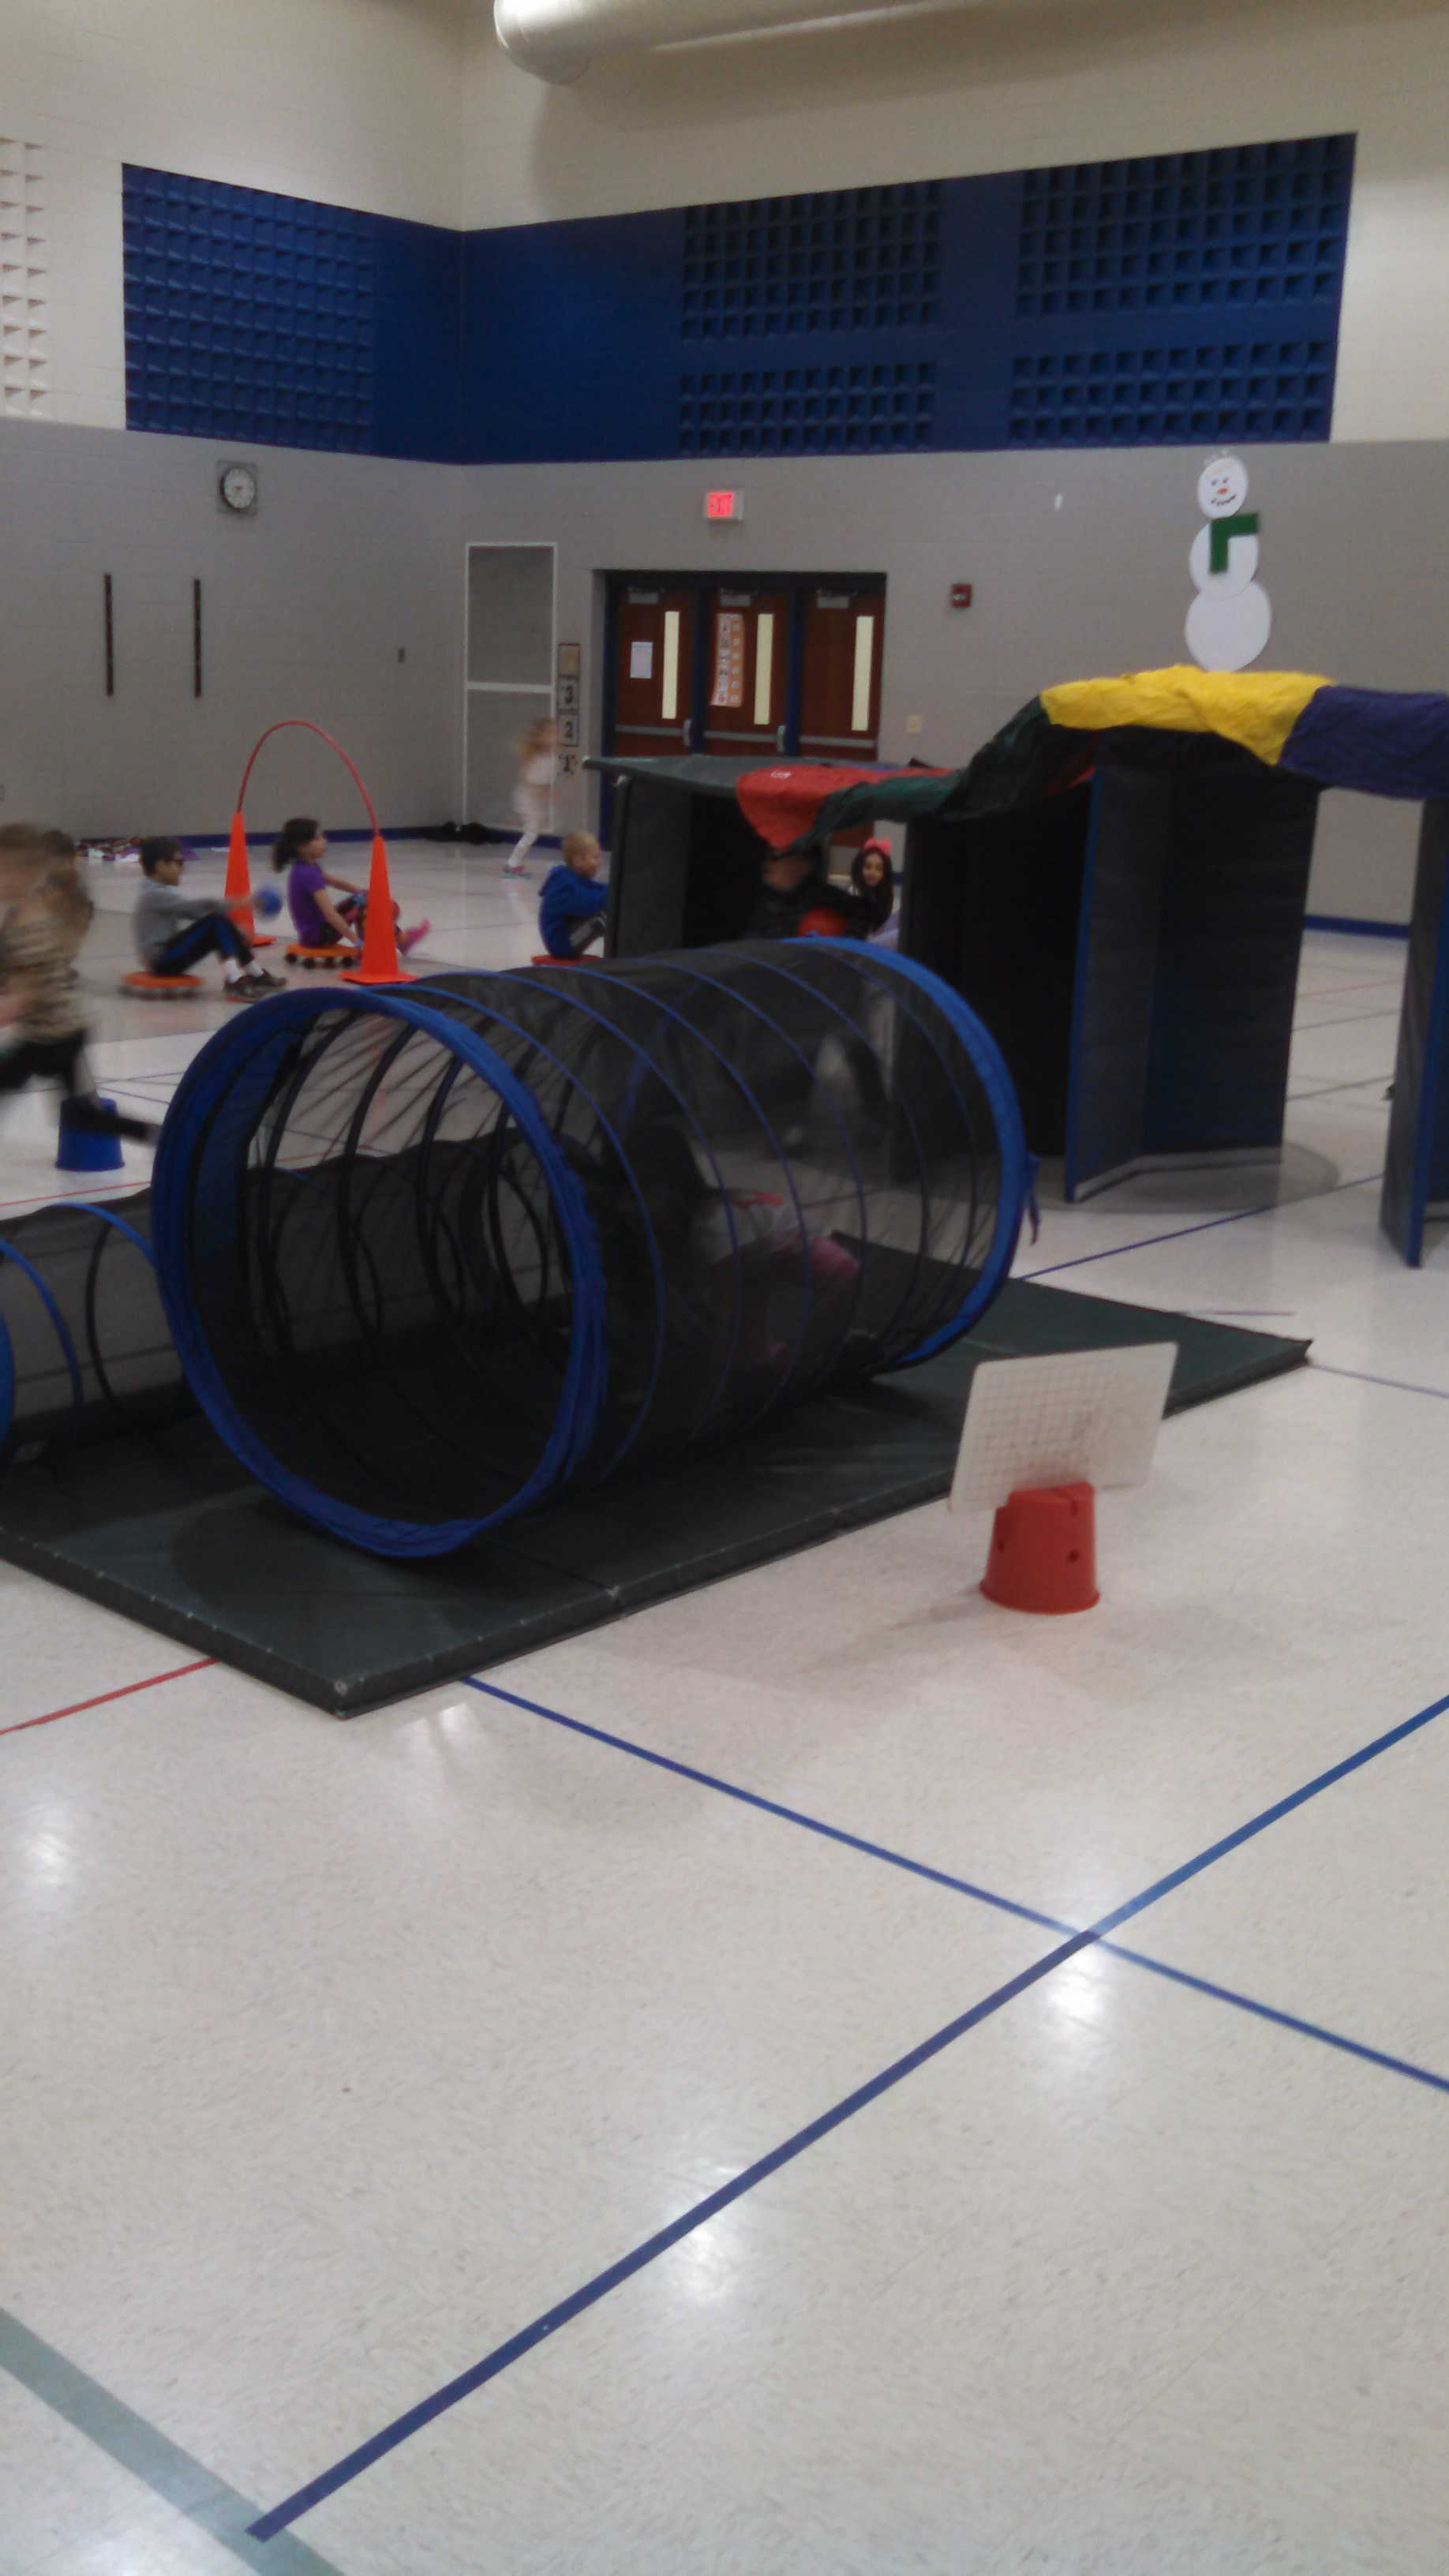 the obstacle course in the gym